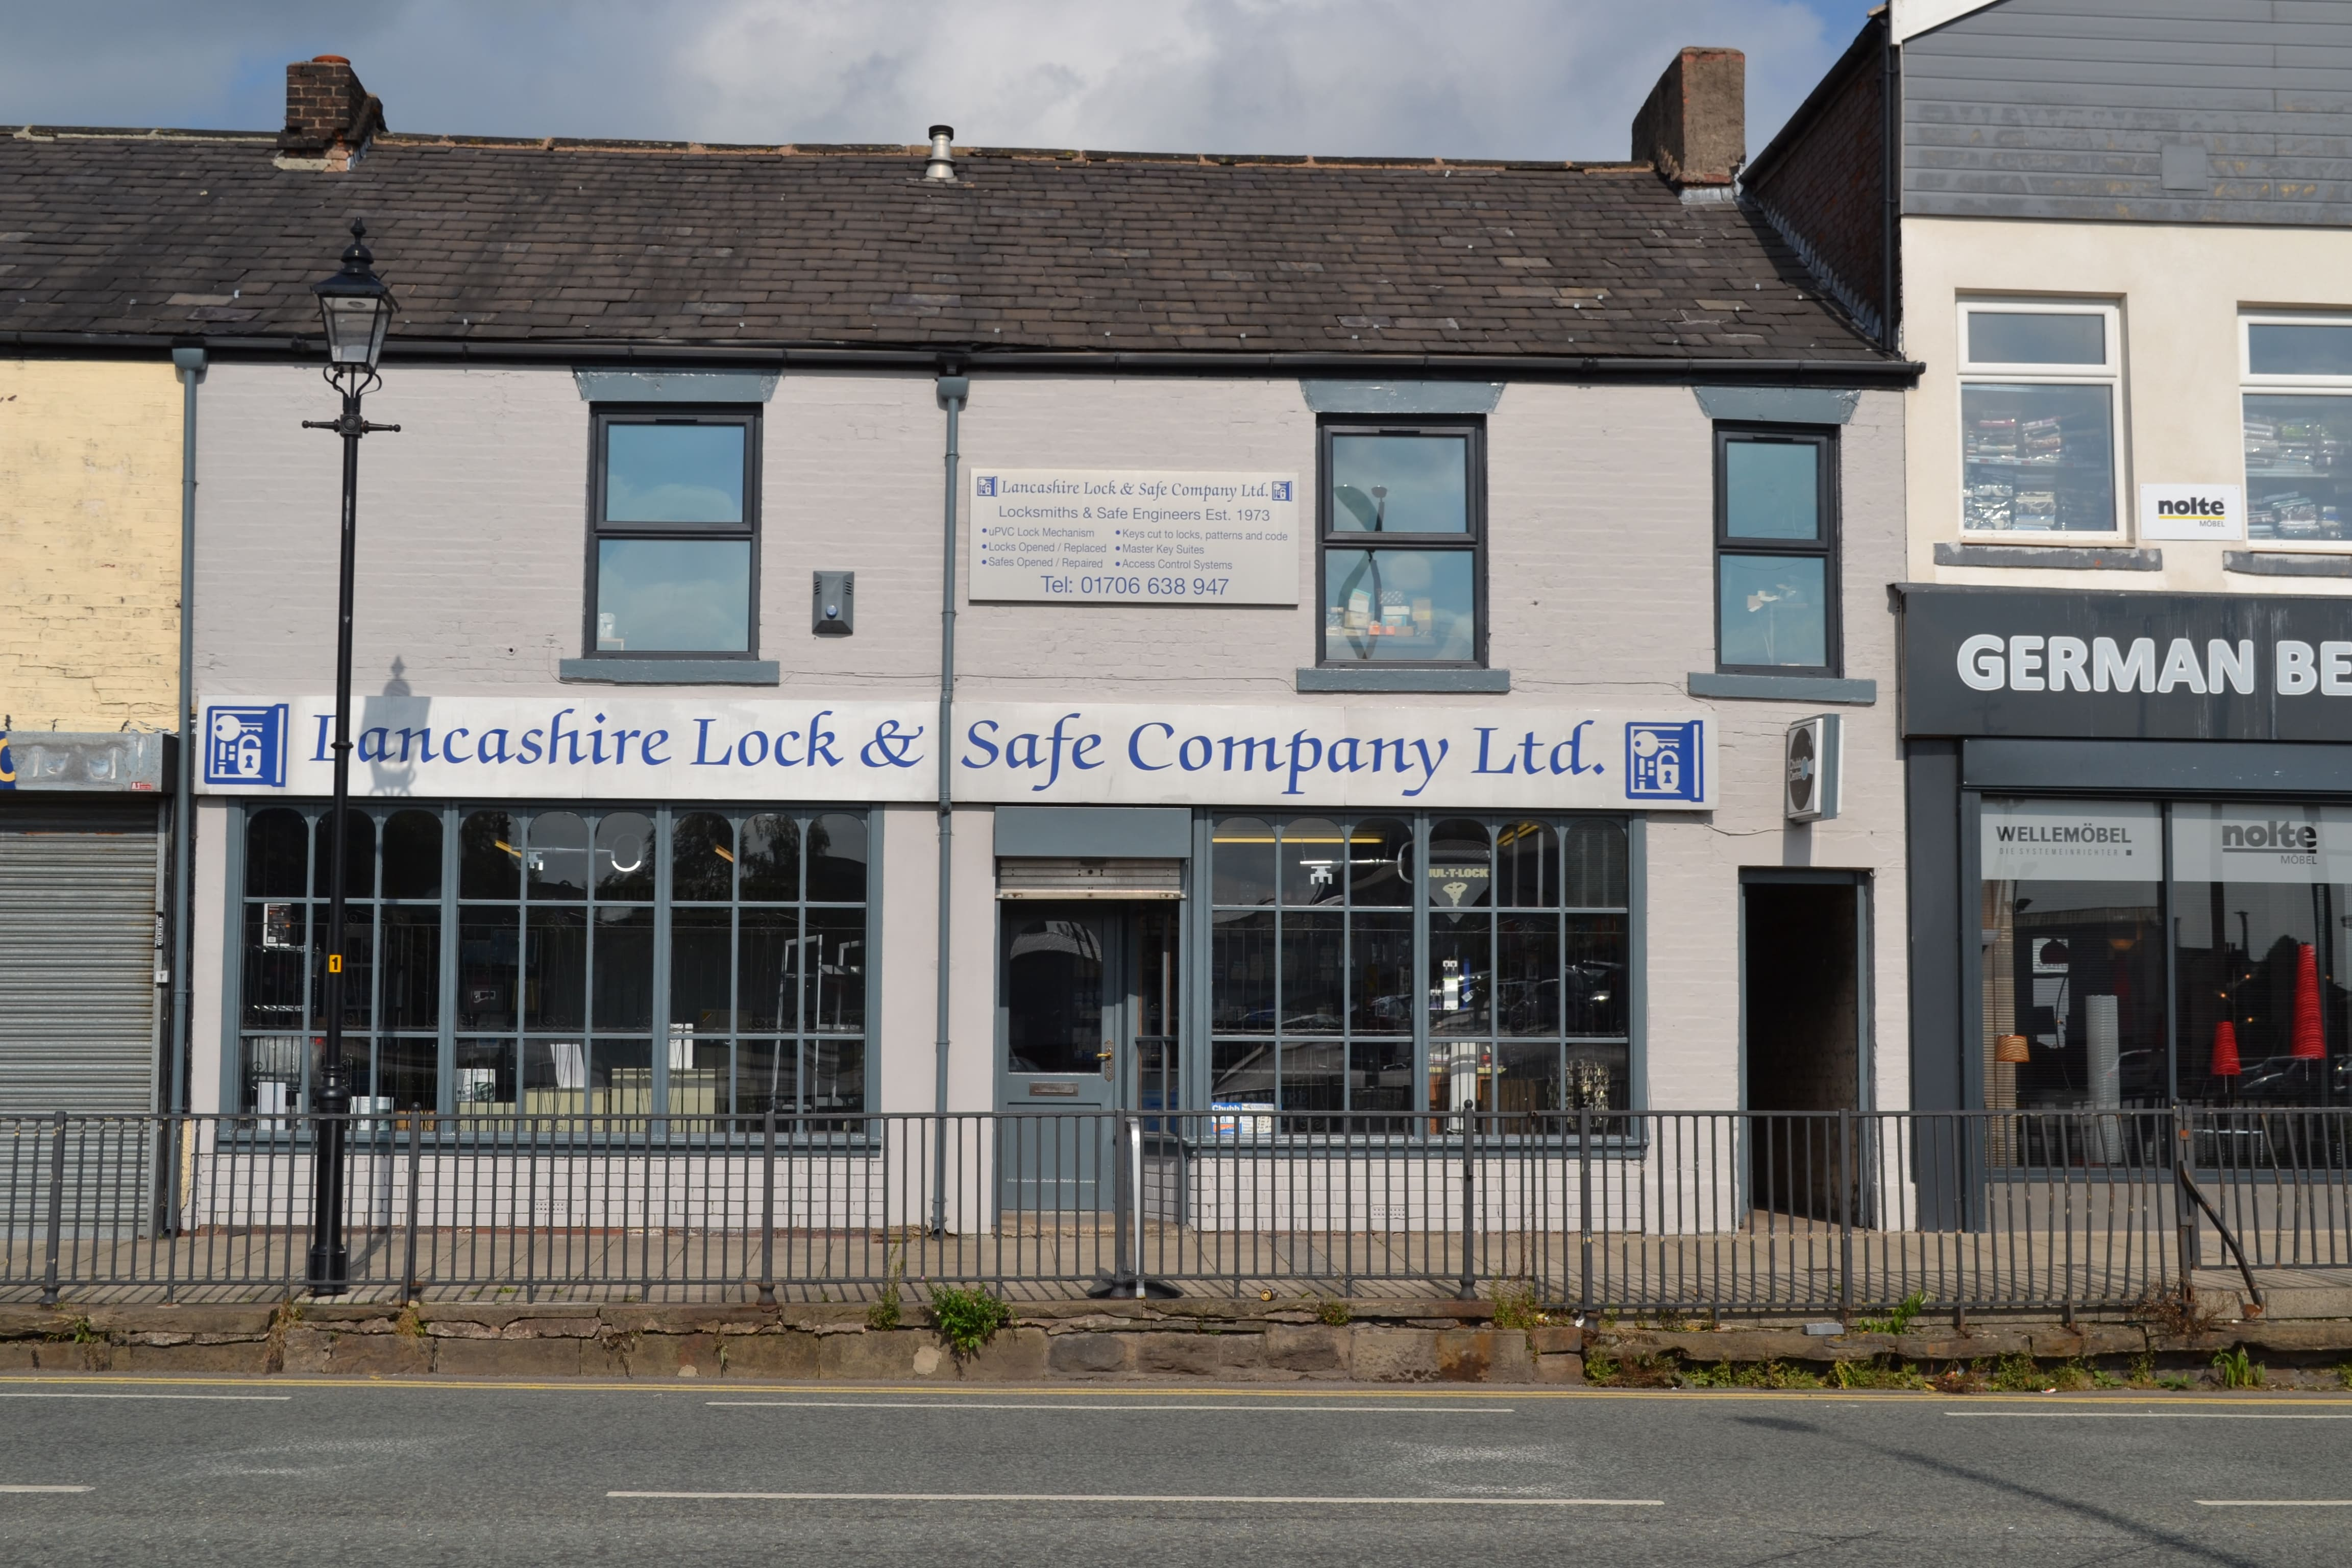 Lancashire Lock and Safe | About Us